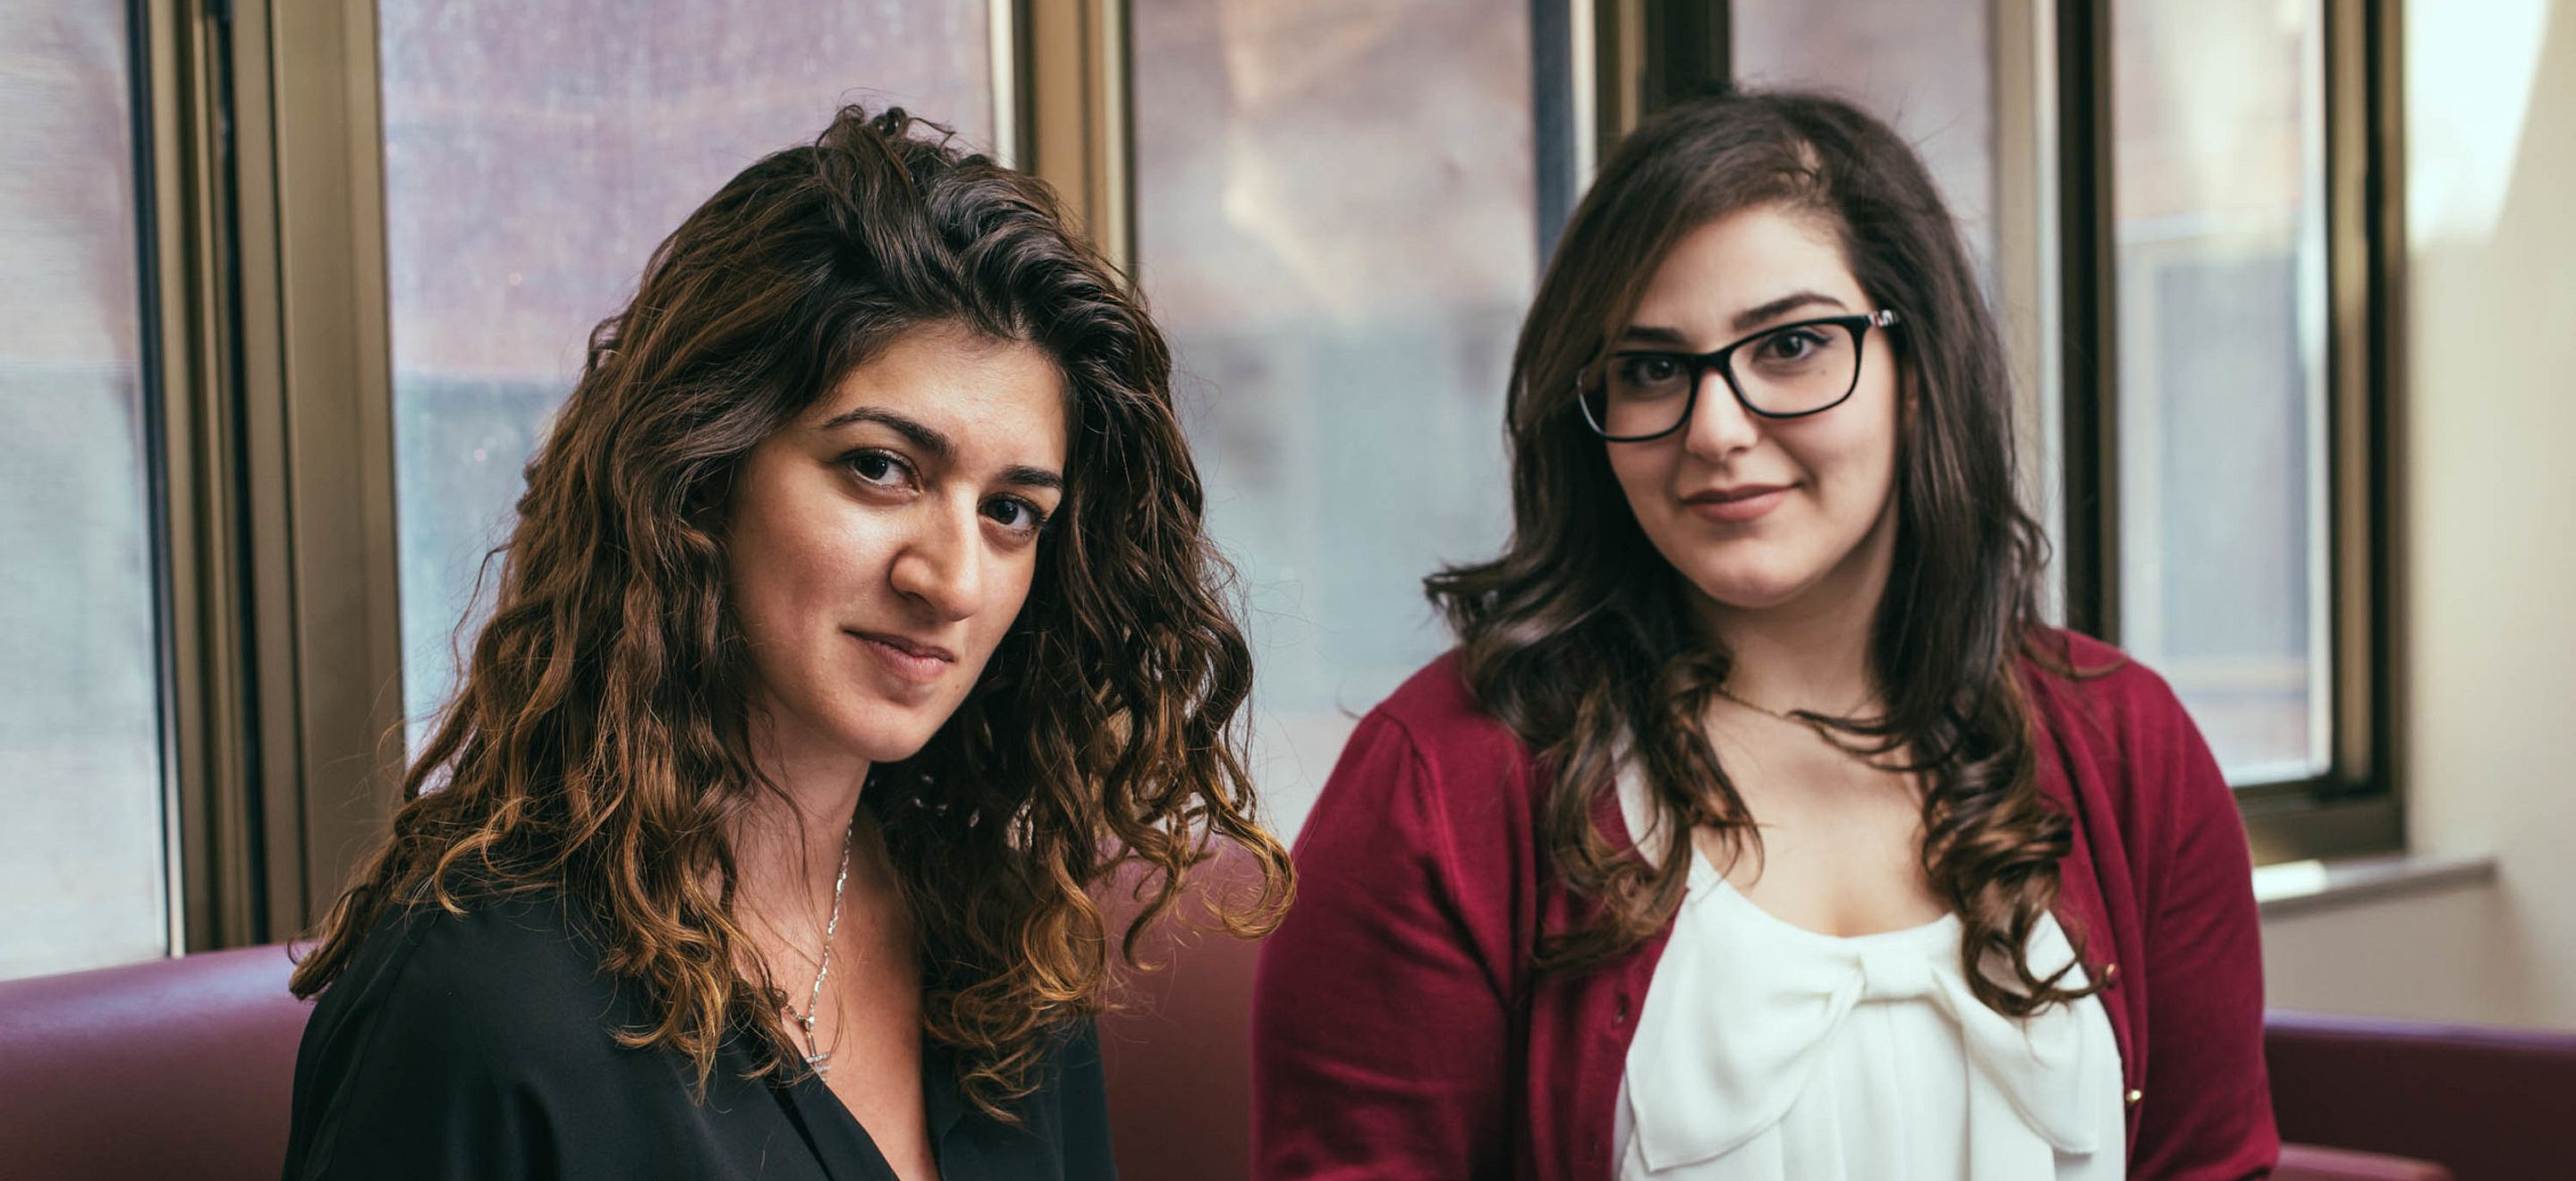 Two young women look into the camera. The woman on the left has shoulder length wavy brown hair and light brown skin. The woman on the right has pale skin and long brown hair that curls slightly at the bottom. She wears glasses. Both women are seated on a maroon colored couch.